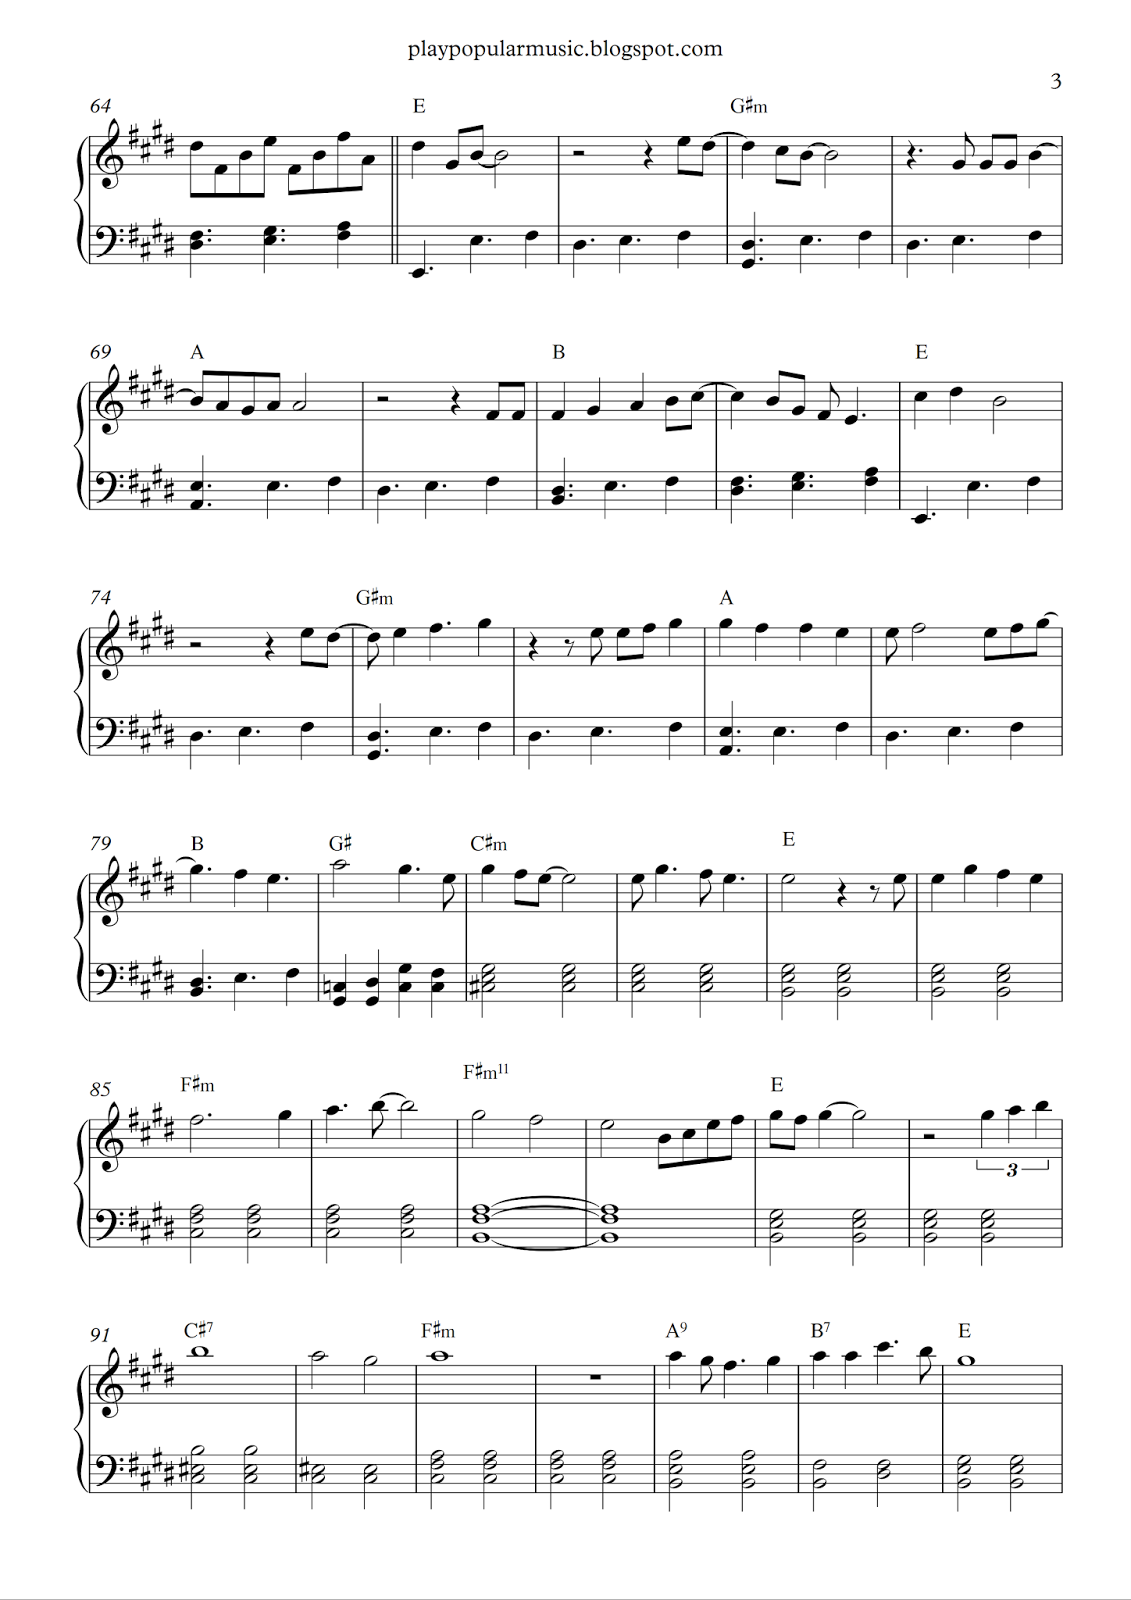 adele sheet music free pdf